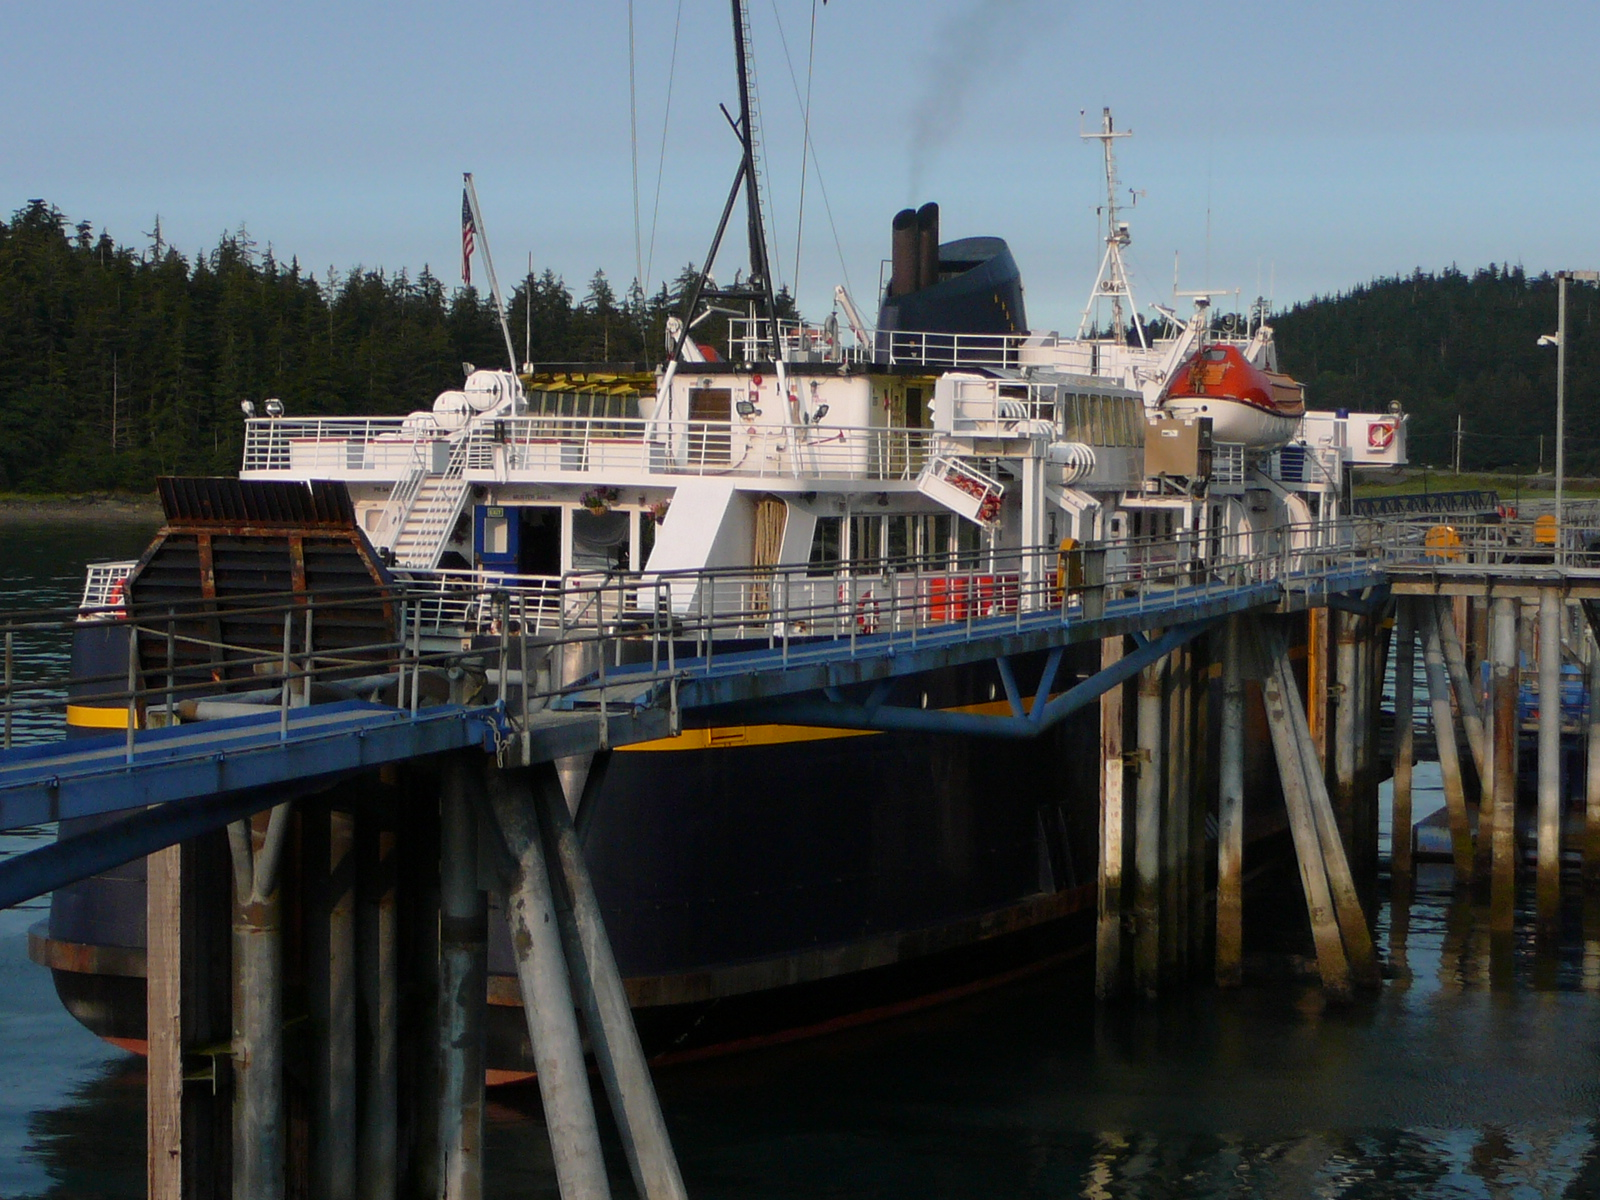 The state ferry LeConte docks in Auke Bay. Its summer sailings from Mitkof Island to Prince of Wales Island have been canceled. (Photo by Ed Schoenfeld/CoastAlaska News)